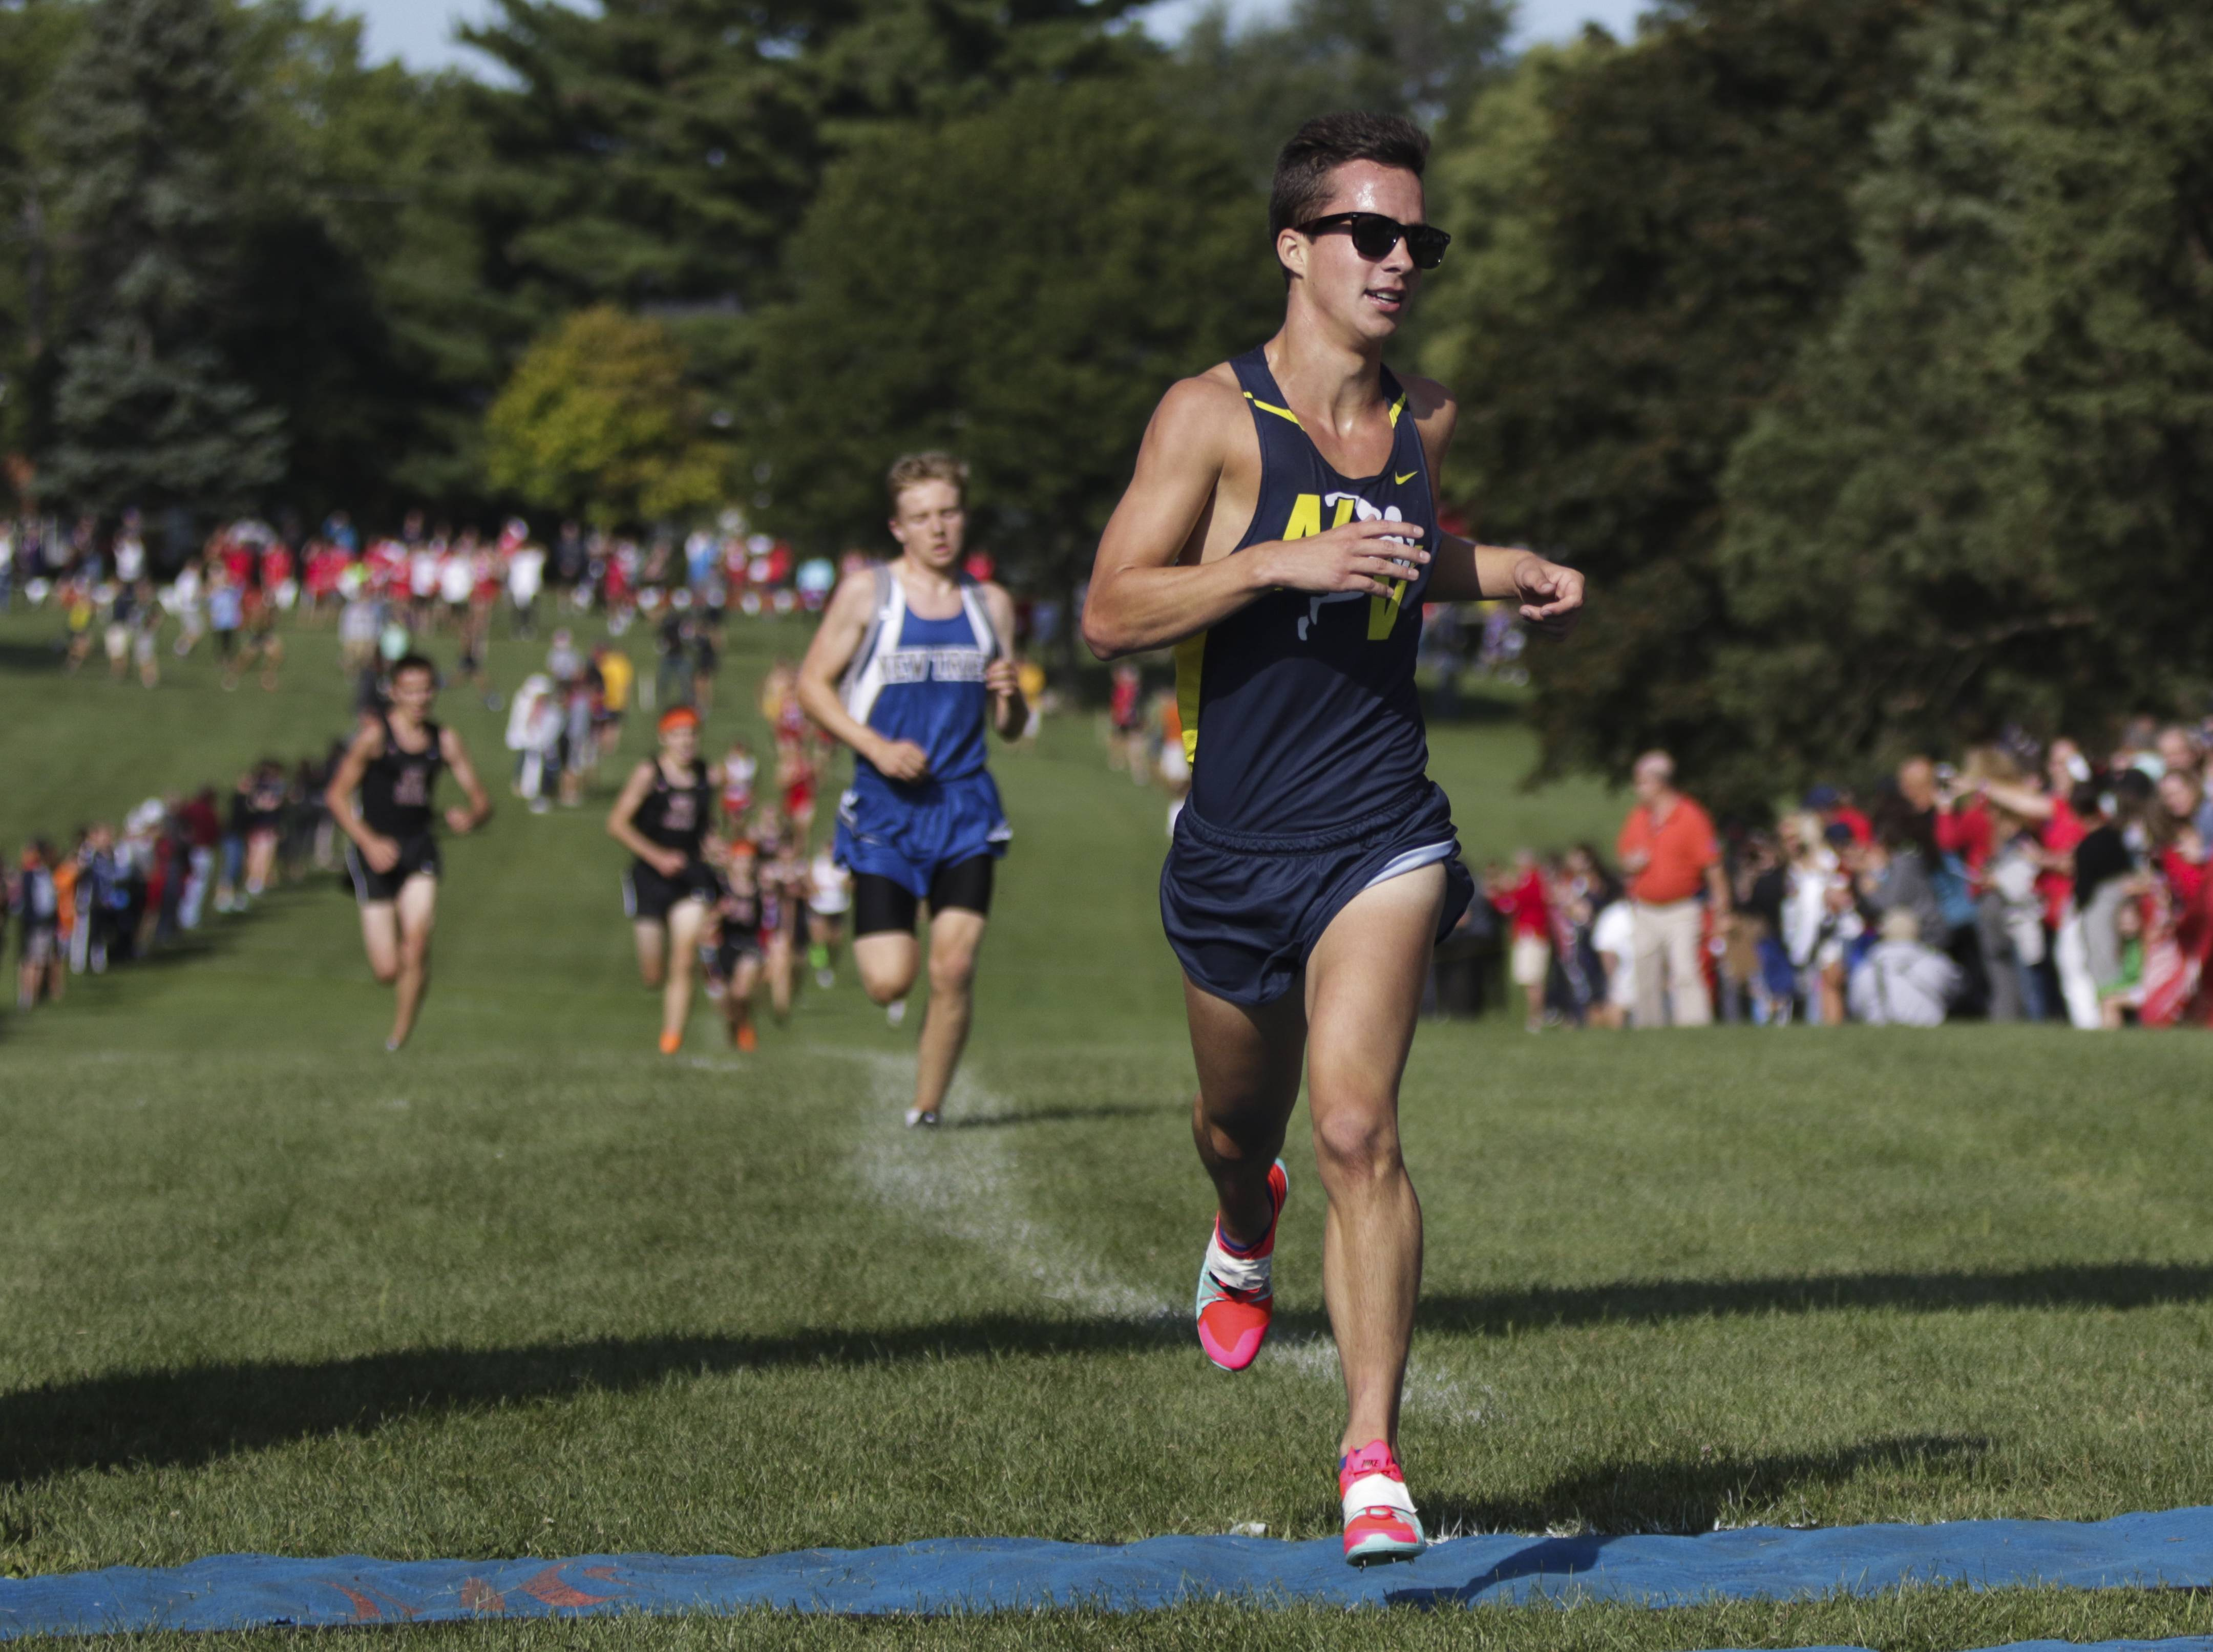 Ryan Kennedy of Neuqua Valley makes his way to a second place finish in the Hinsdale Central/Hinsdale South cross country invitational on Saturday.